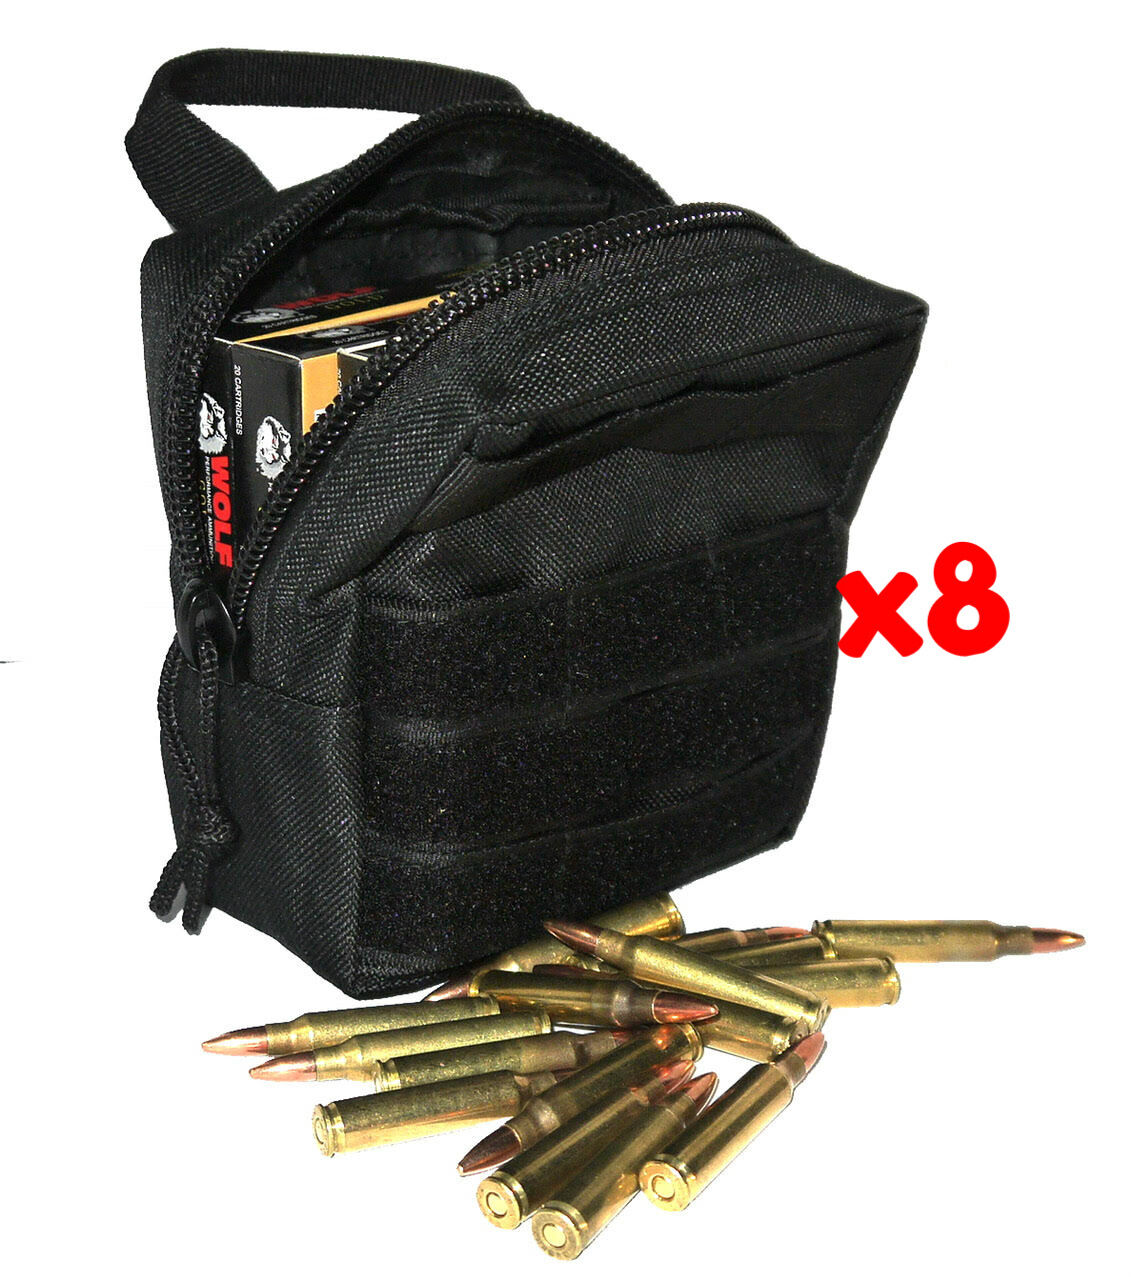 (8) 762X54 AMMO MODULAR MOLLE UTILITY POUCHES FRONT HOOK LOOP STRAP .762 X 54